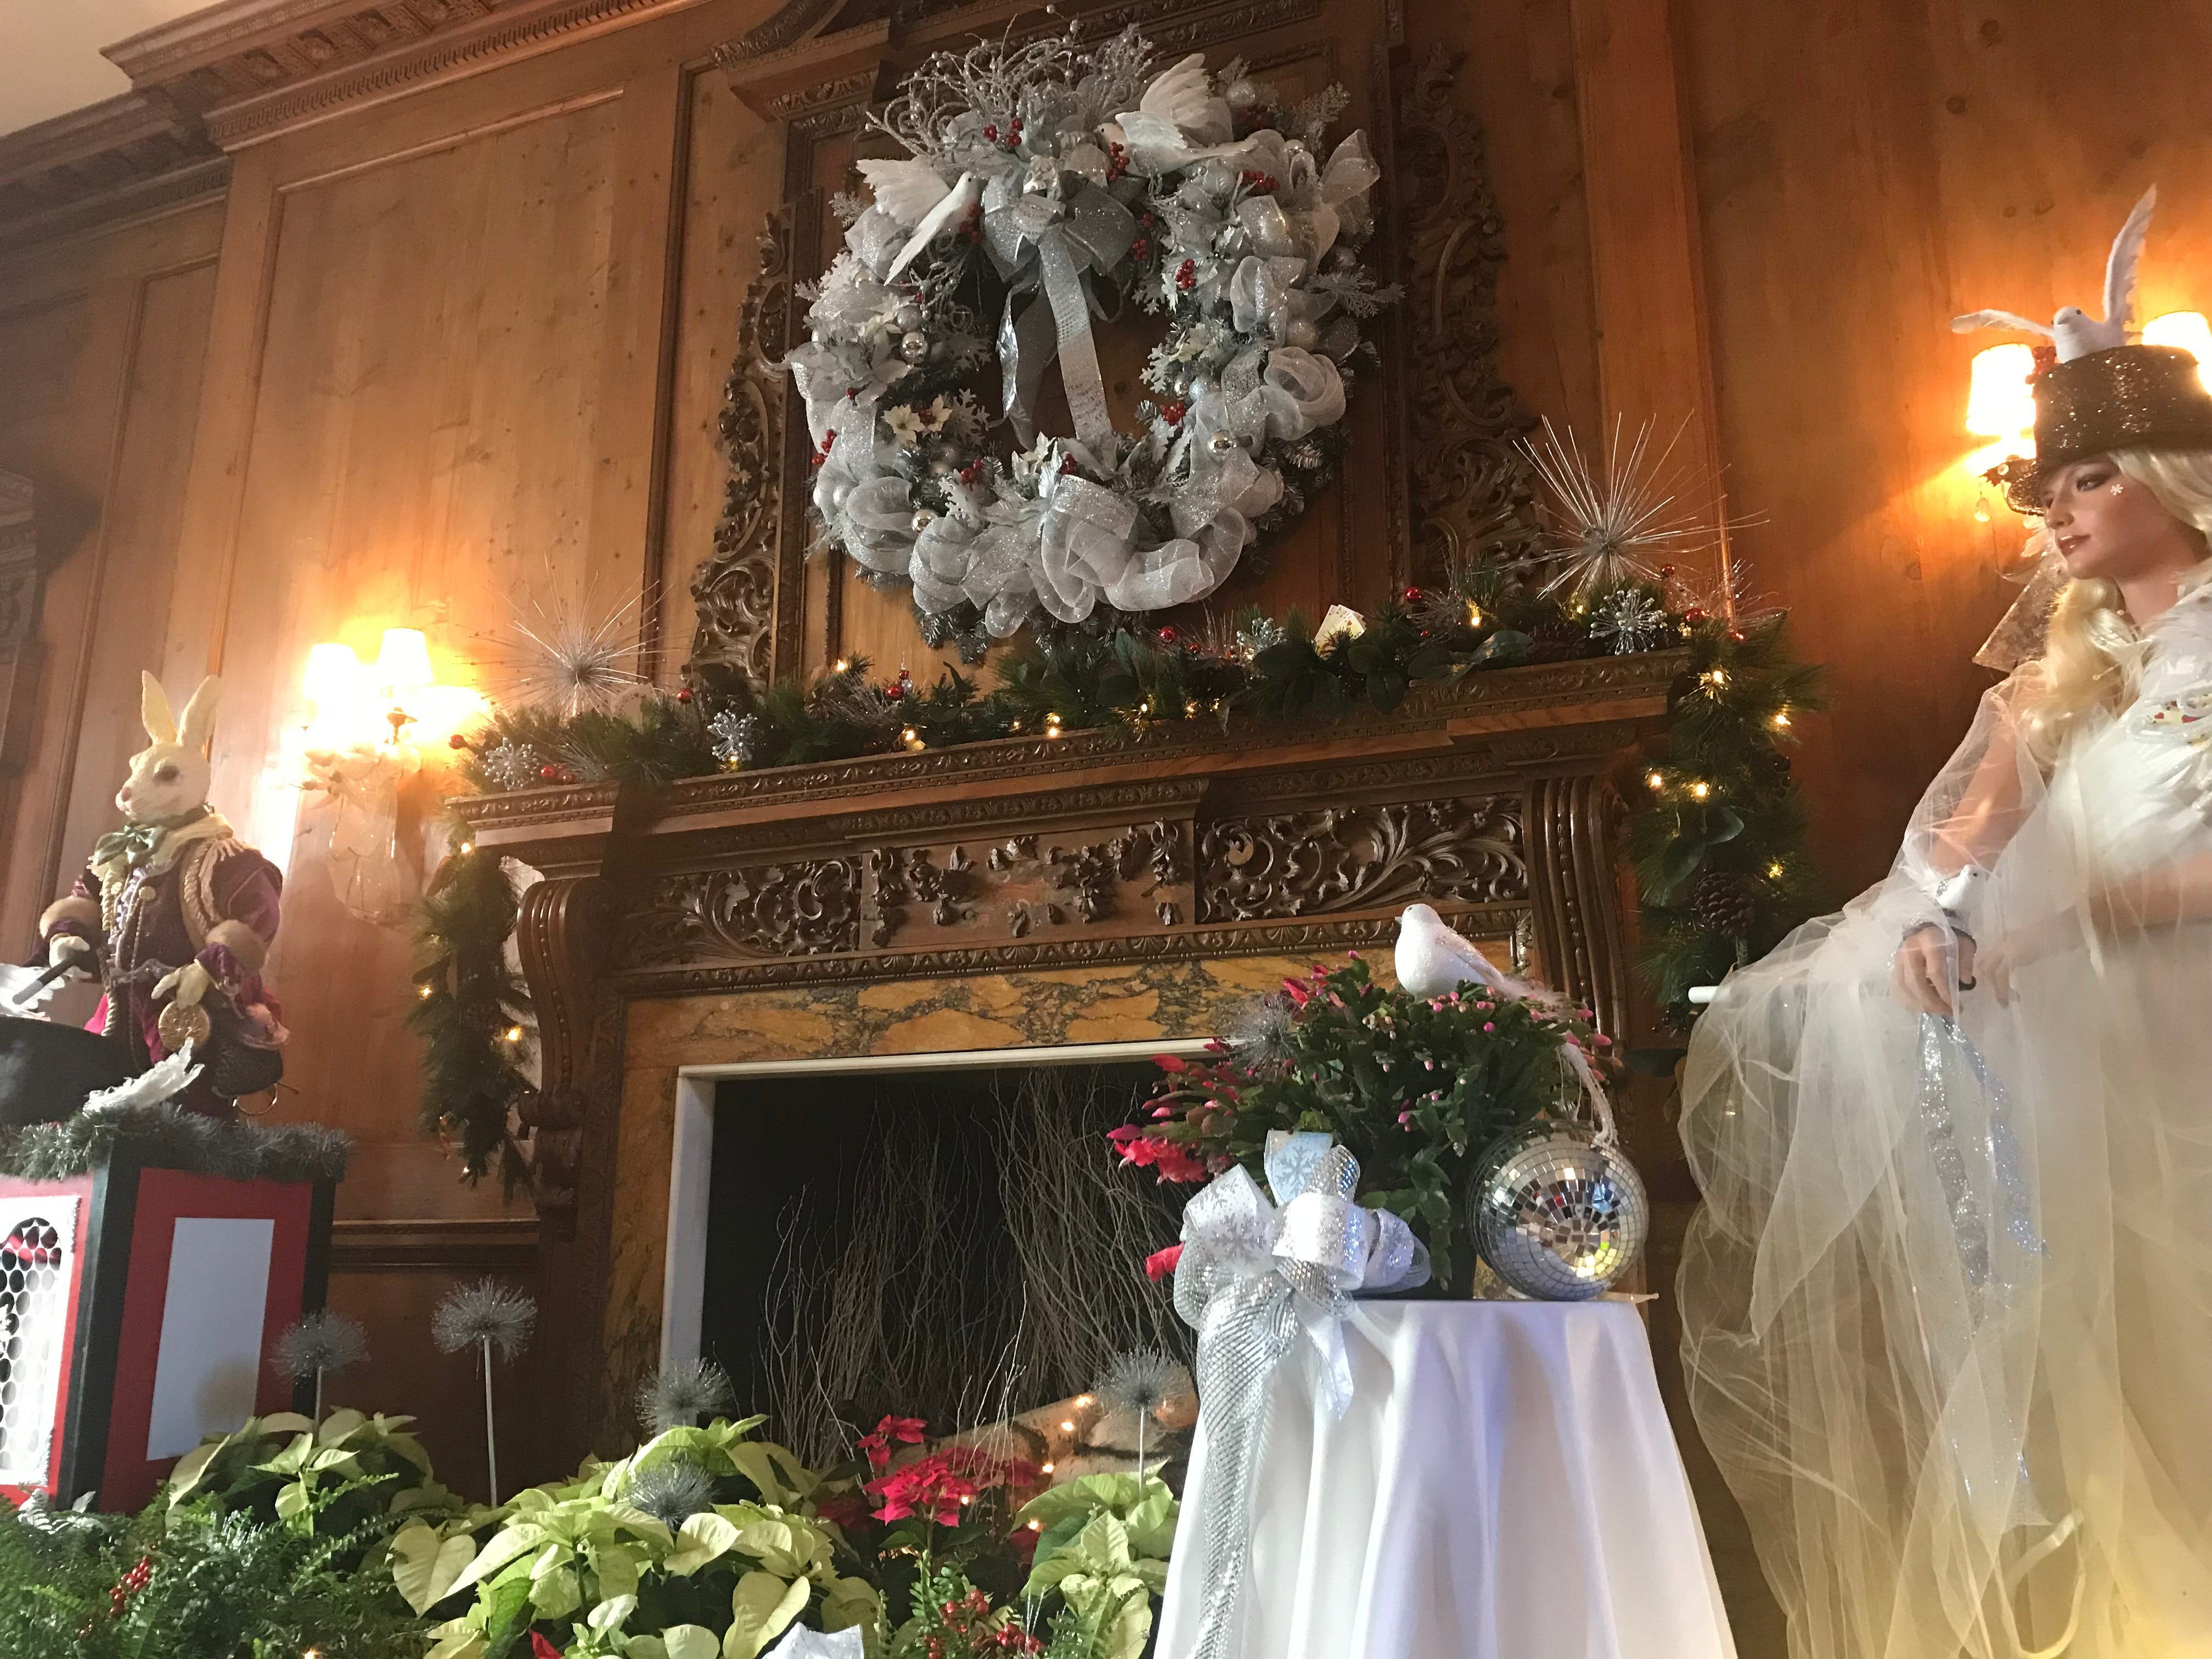 The Skylands Manor holiday open house at the New Jersey State Botanical Garden in Ringwood, as seen on Dec. 1, 2017, returns Nov. 29, 2018.